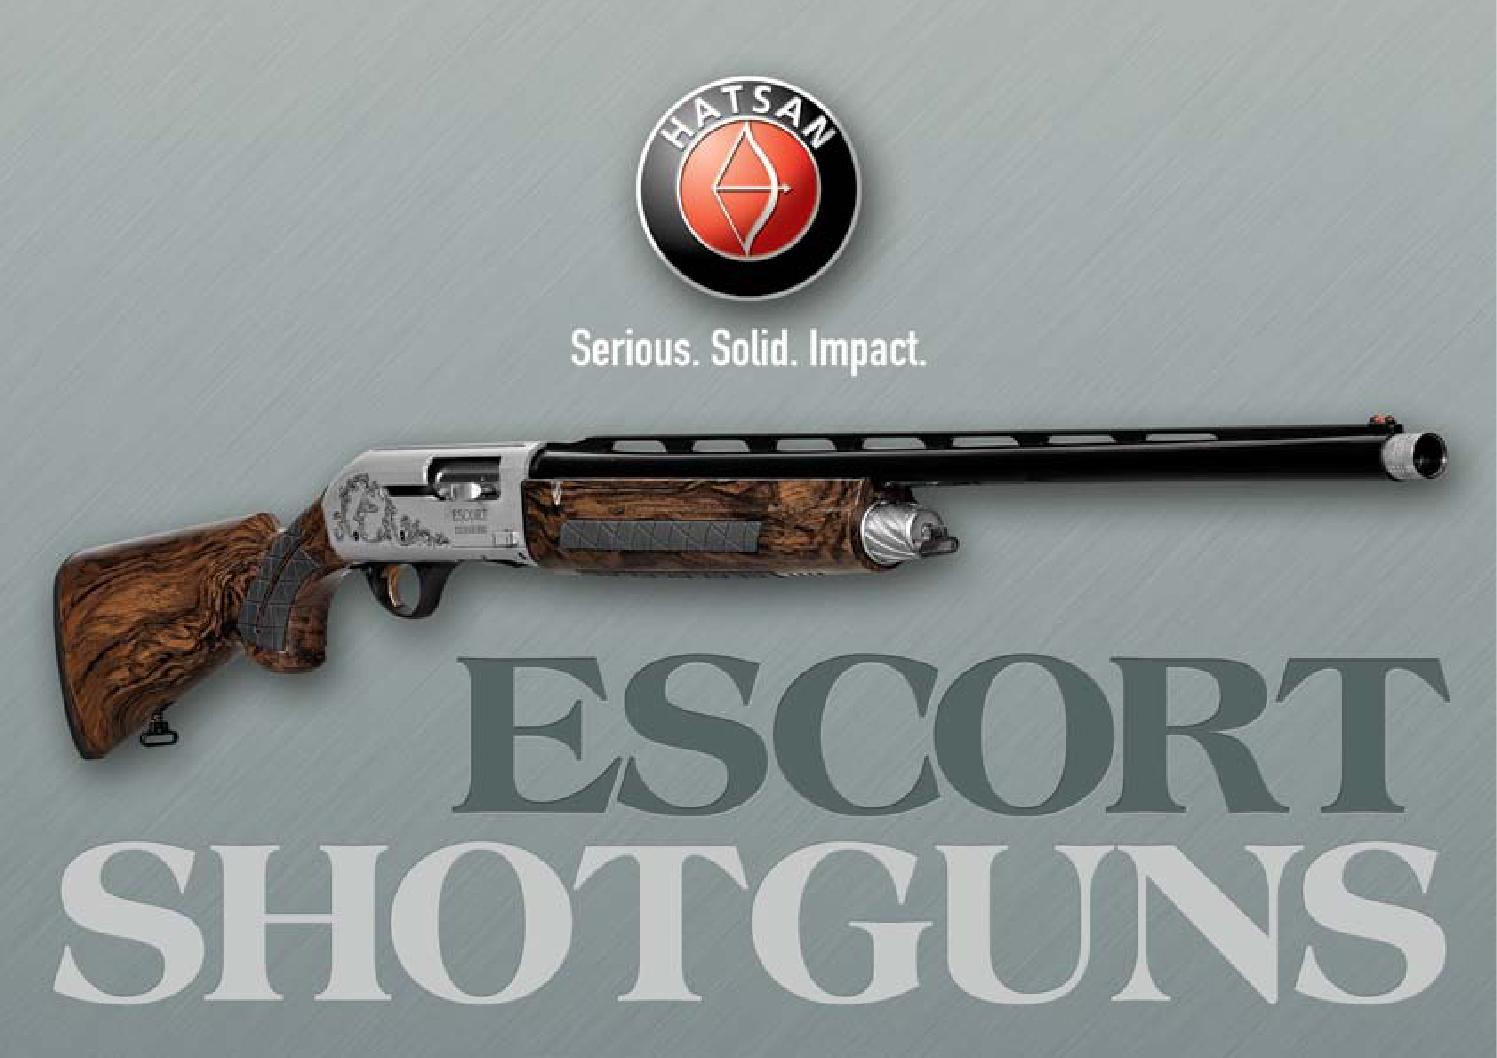 Escort Supreme Magnum Left Handed Shotgun Review